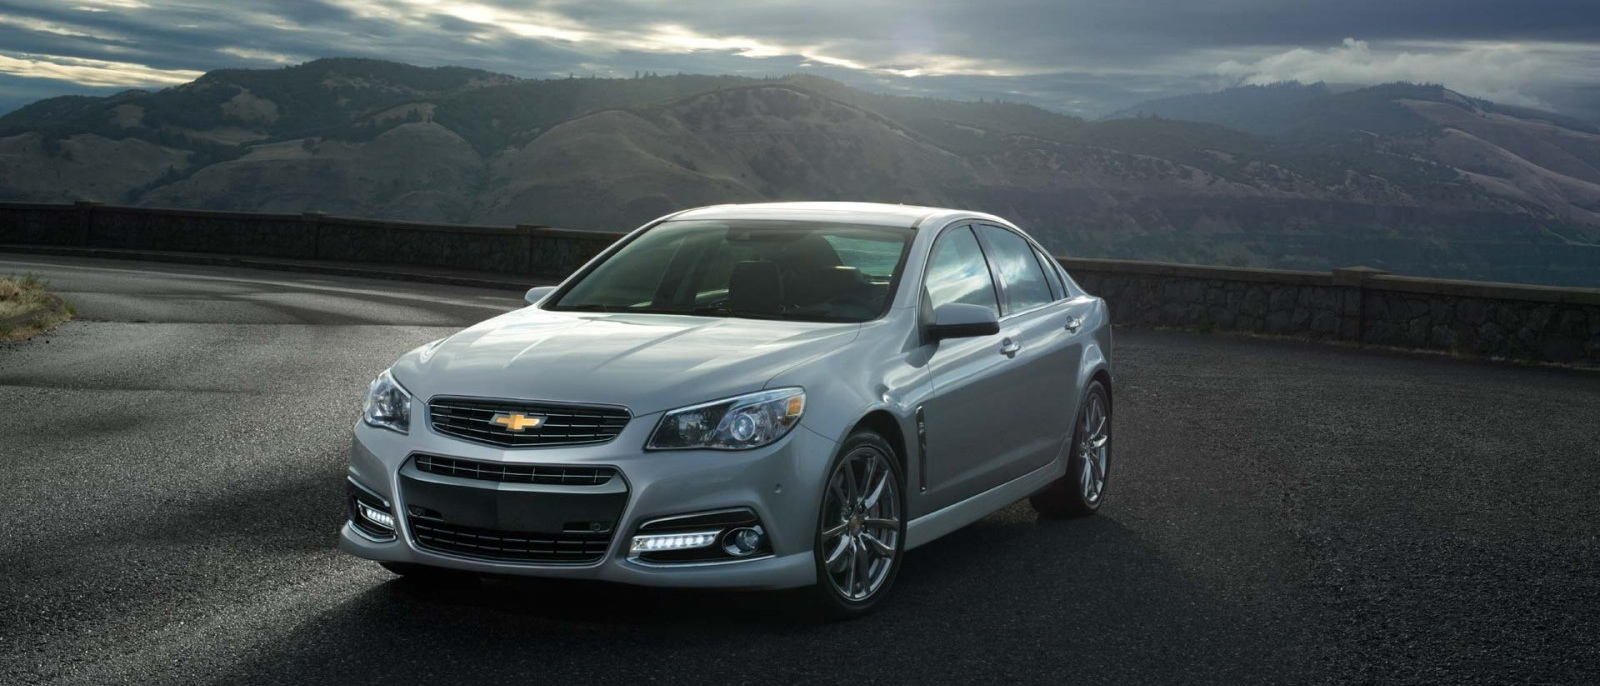 2014 Chevy SS Exterior Front Image